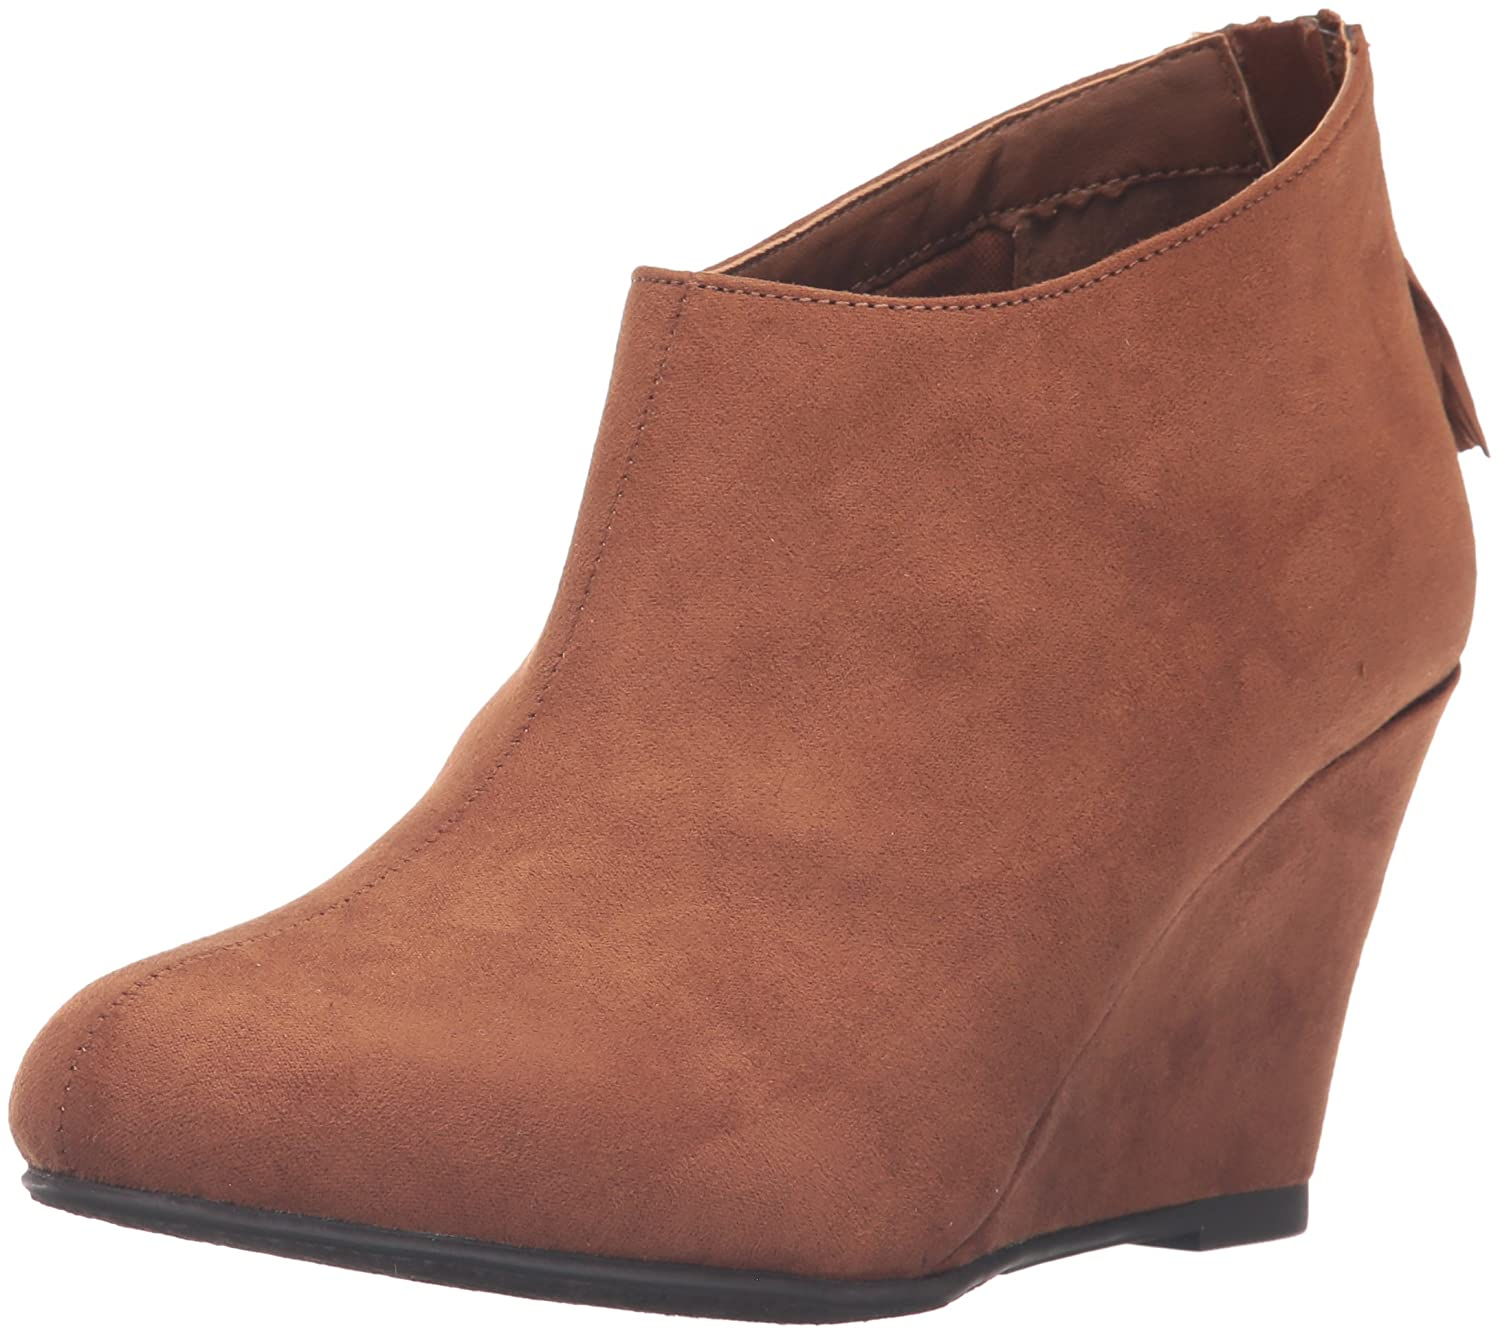 CL by Chinese Laundry Women's Via Wedge Bootie B01EZYVIN4 8 B(M) US|Whiskey Super Suede